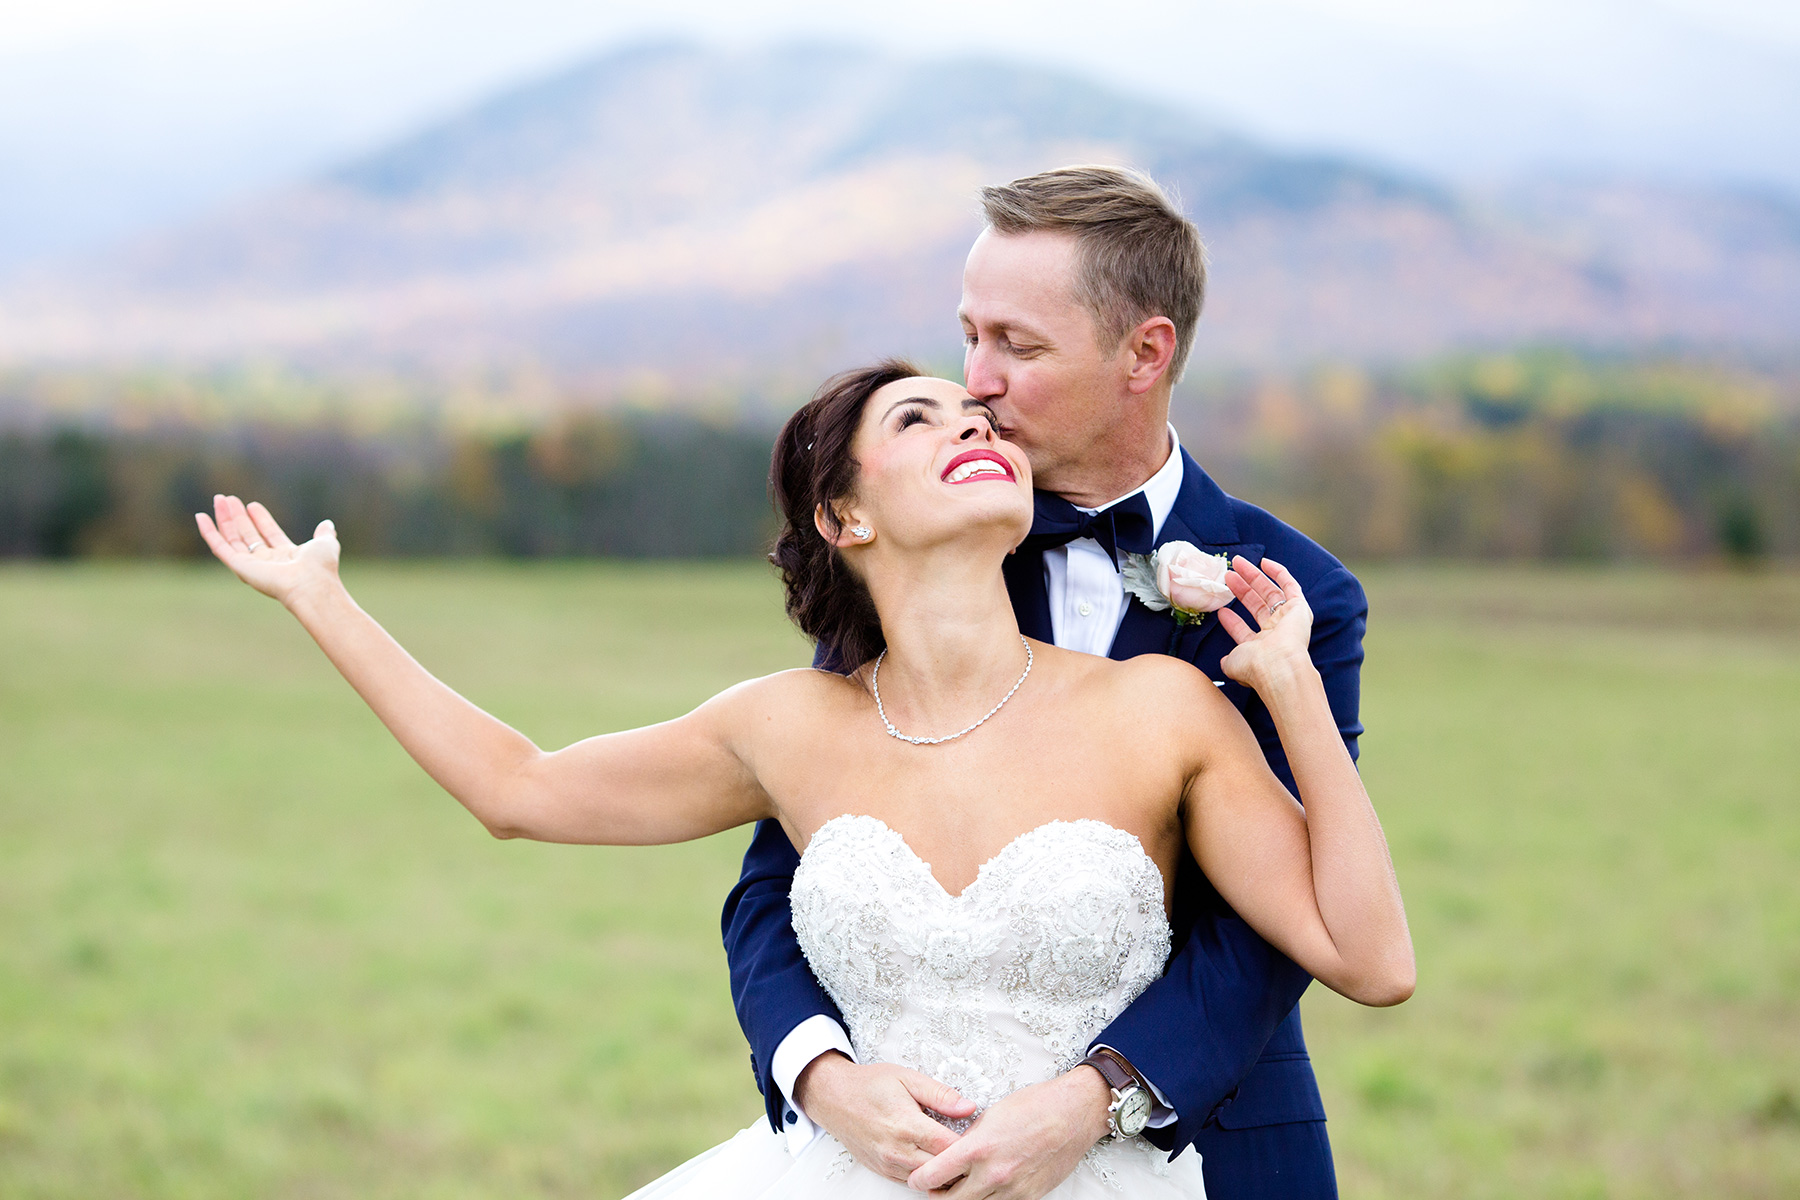 This beautiful destination wedding was in lake placid new york and you can see the mountains in the background. The groom is hugging the bride and this was taken by a